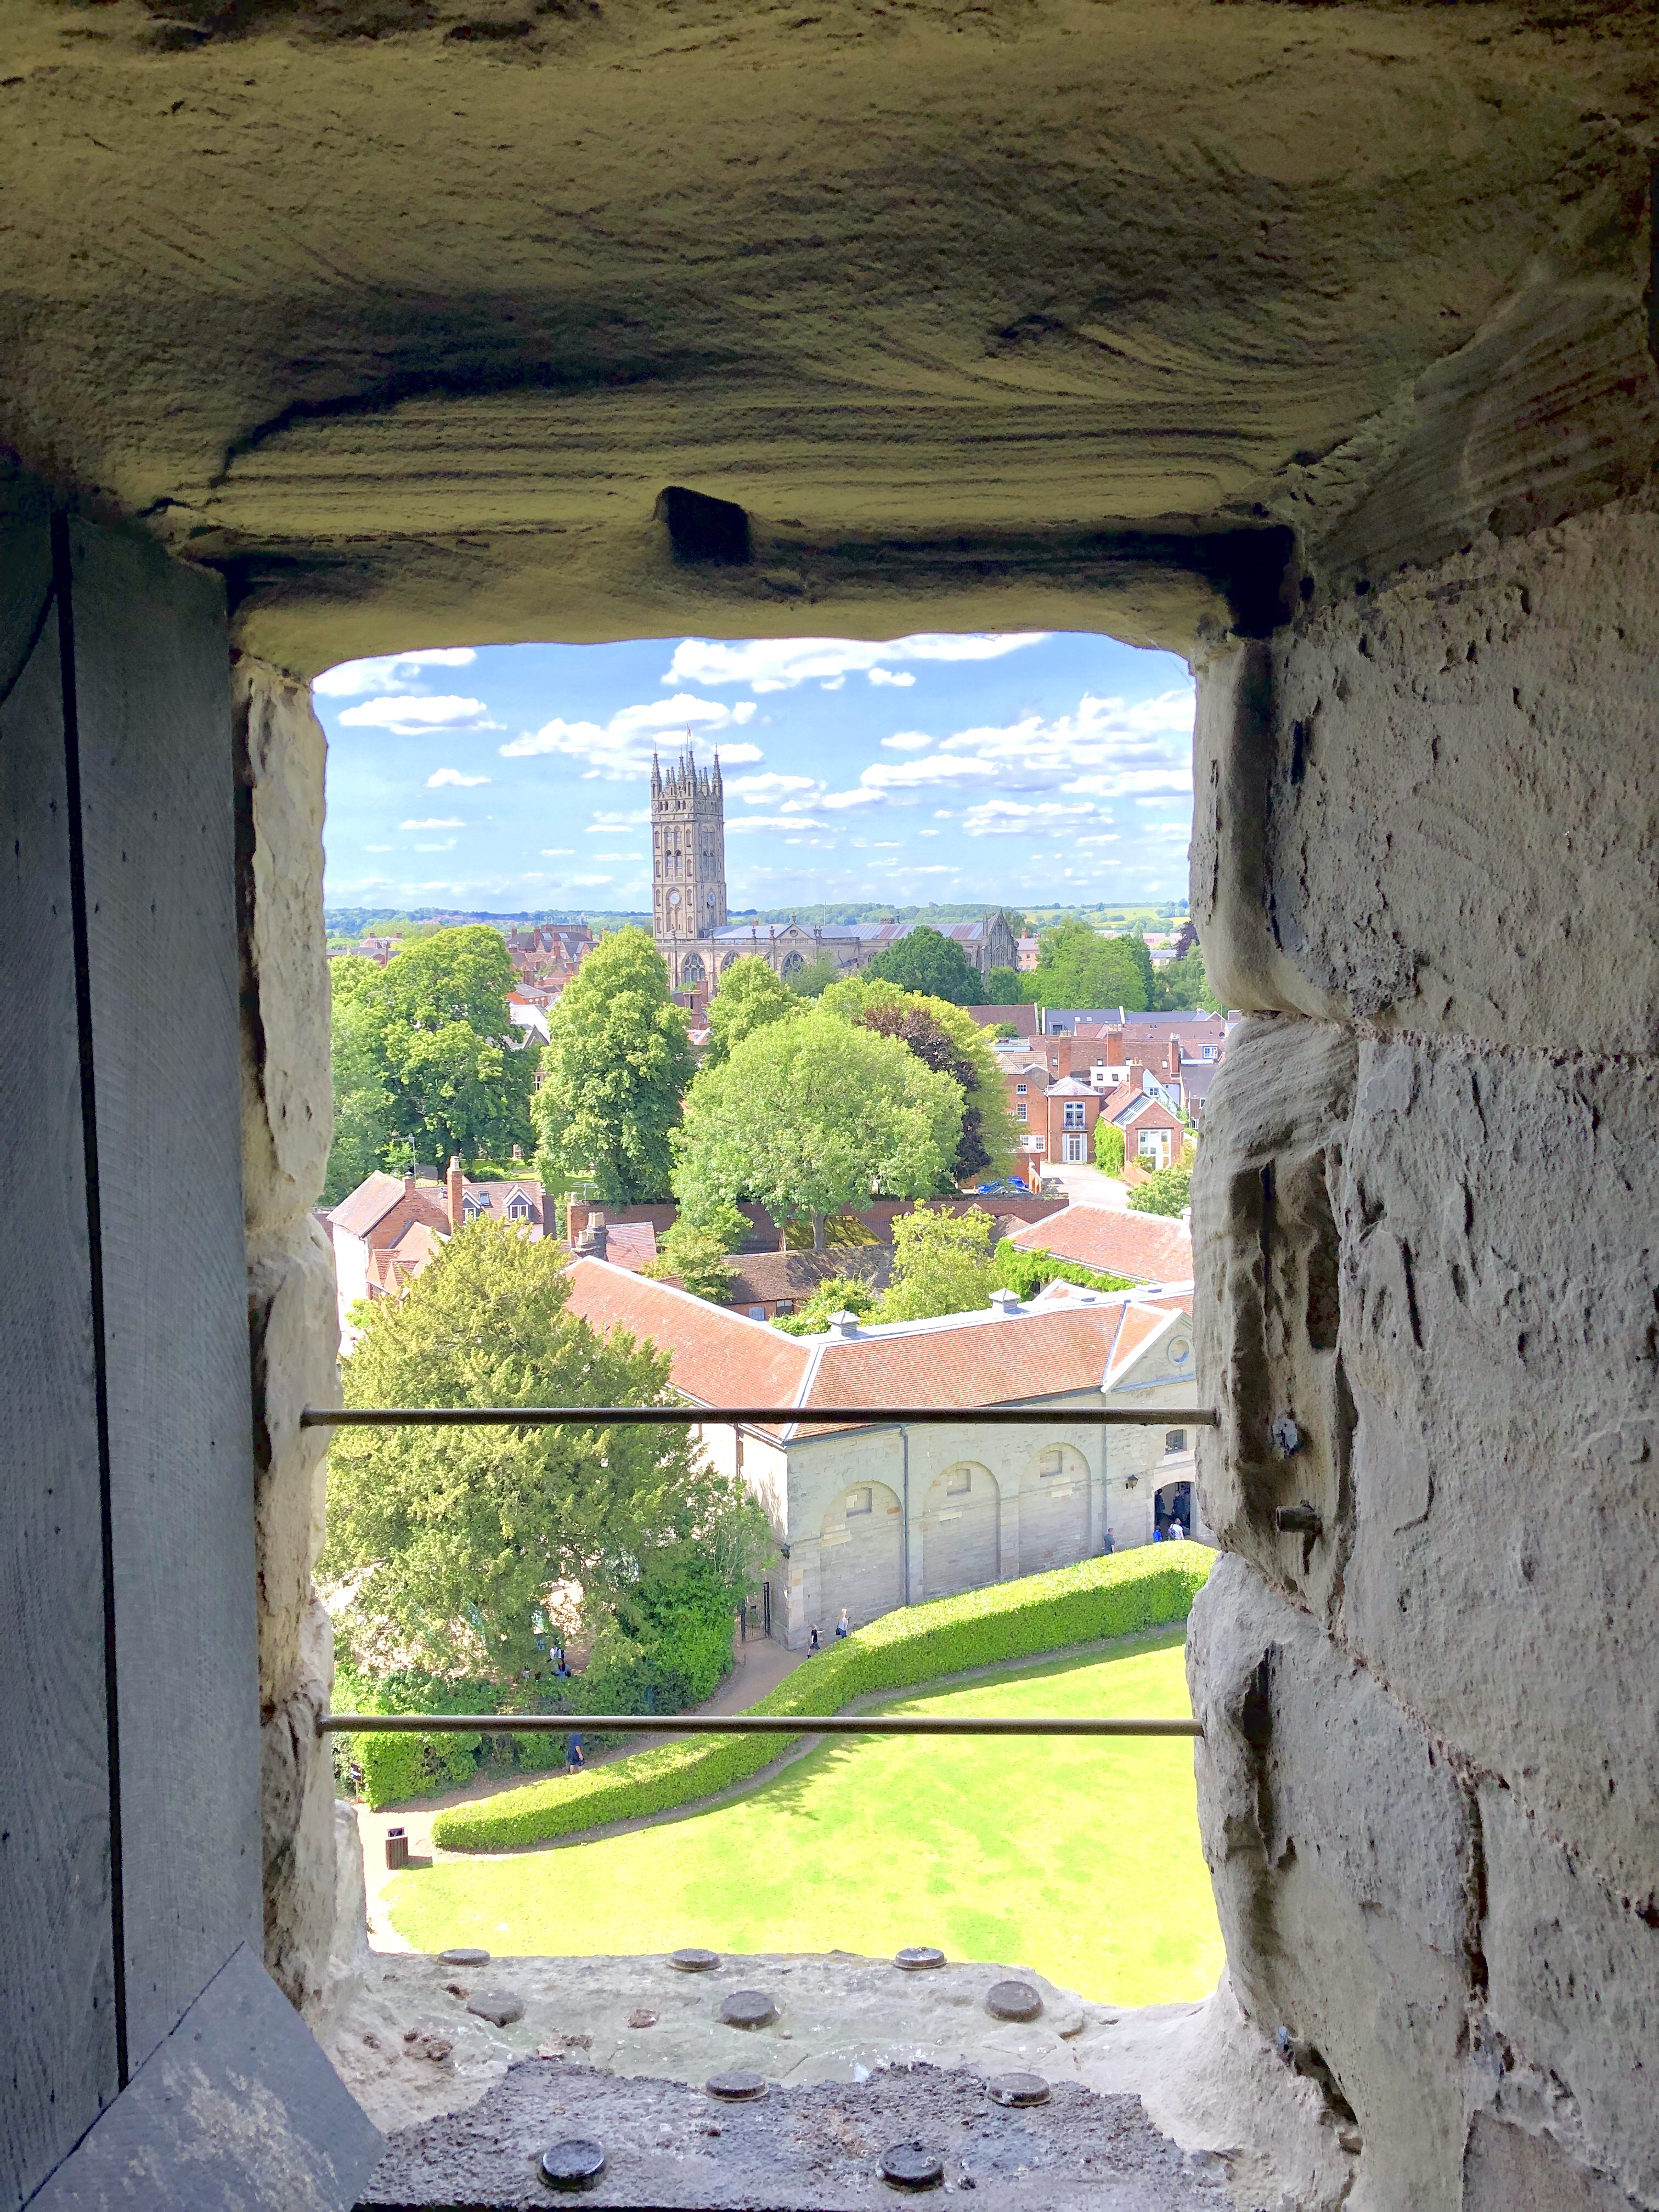 View of Warwick Cathedral from the top of the tower at the castle.